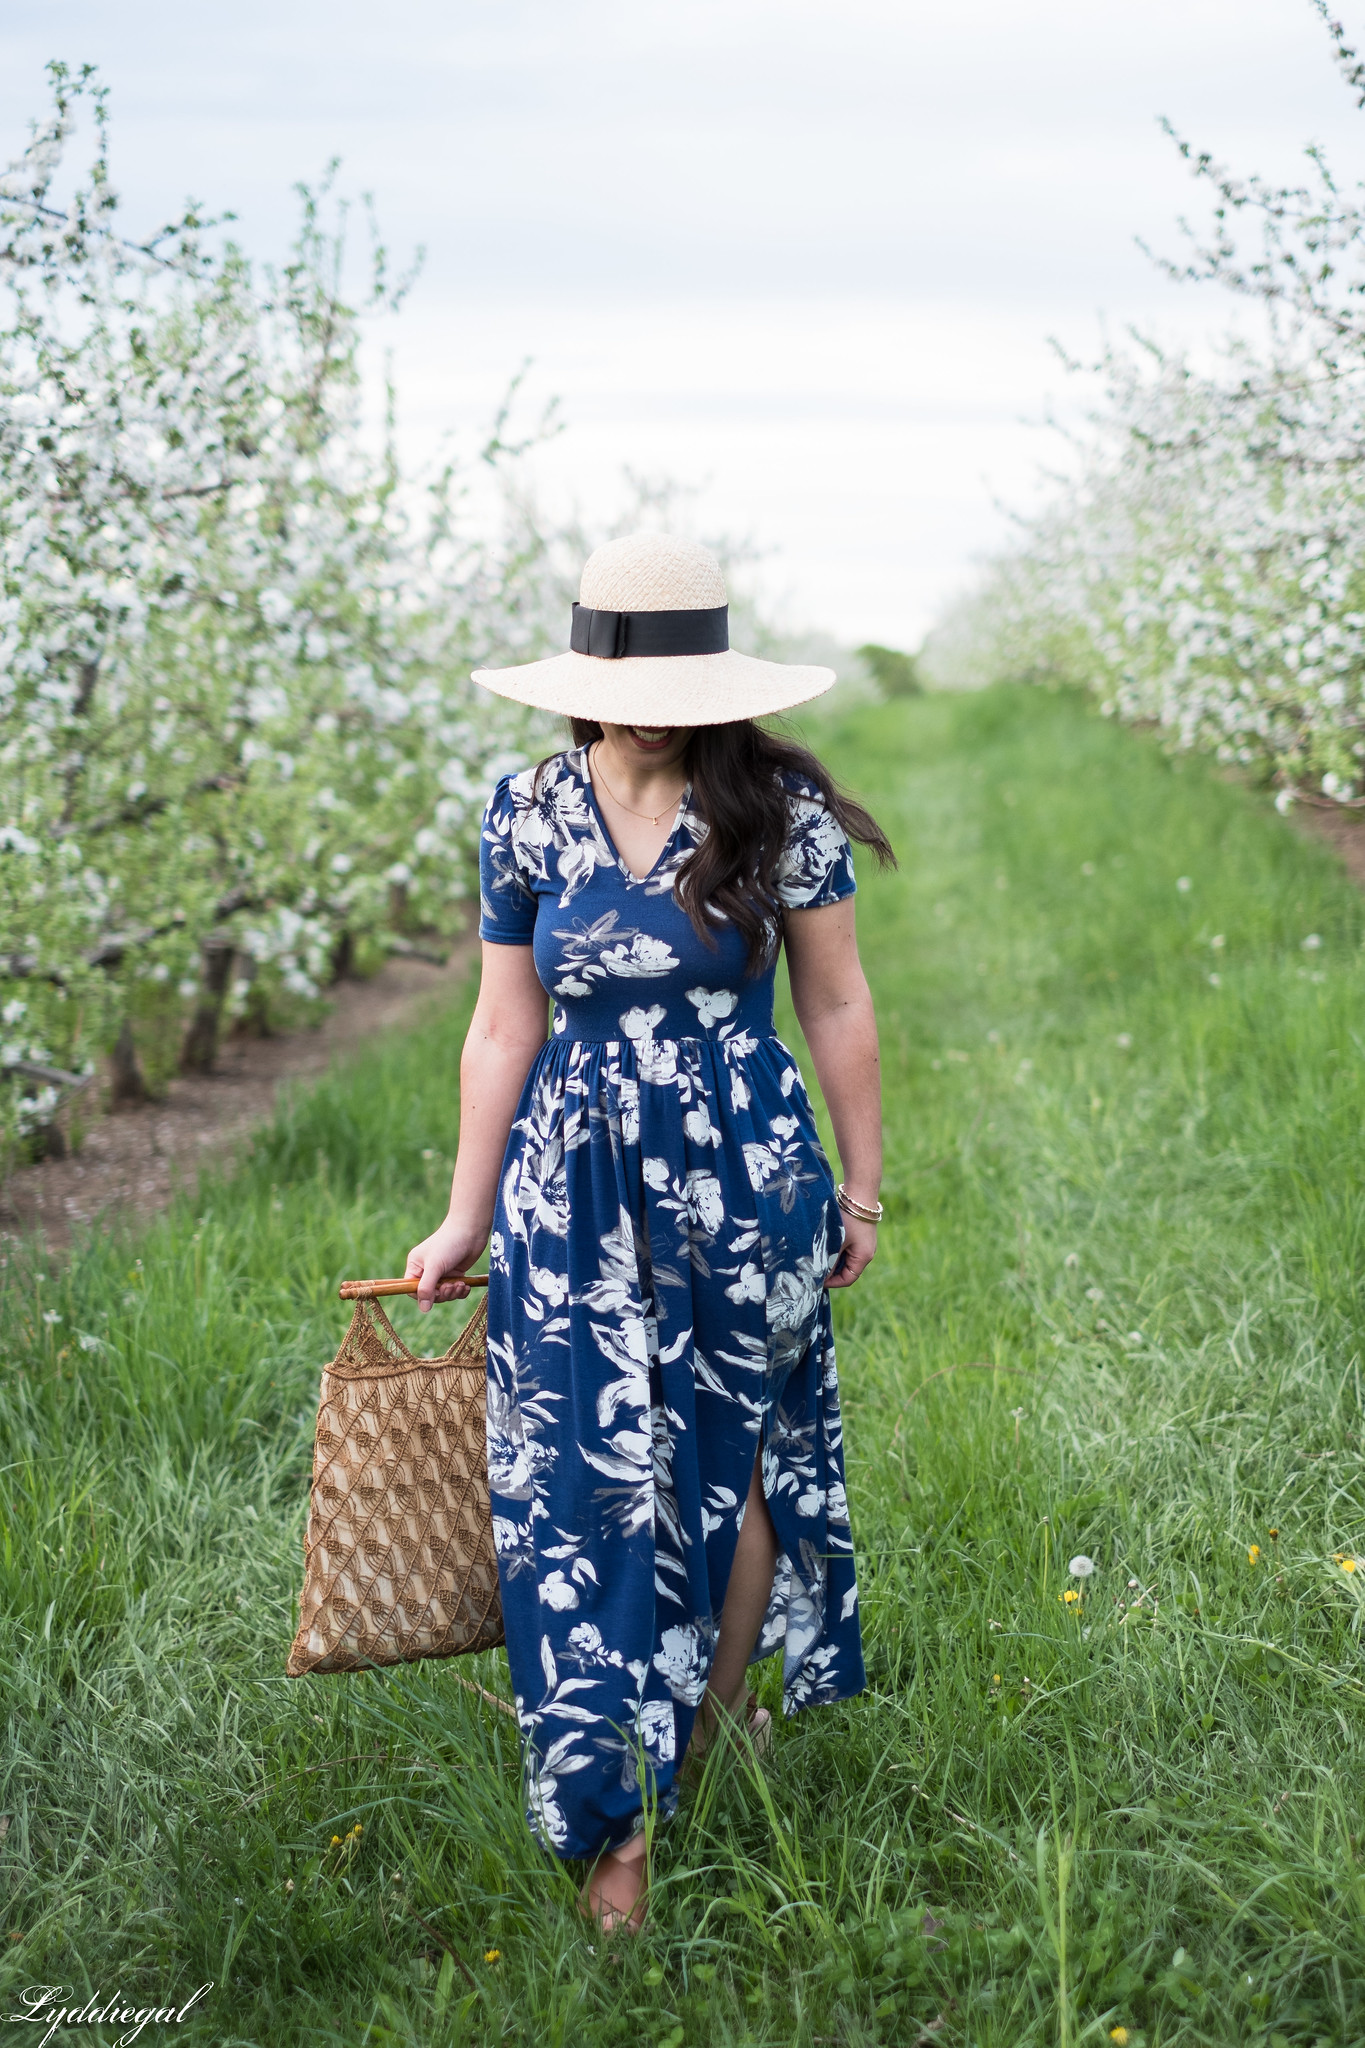 Blue and white floral maxi dress, straw sun hat, macrame bag, apple orchards-27.jpg